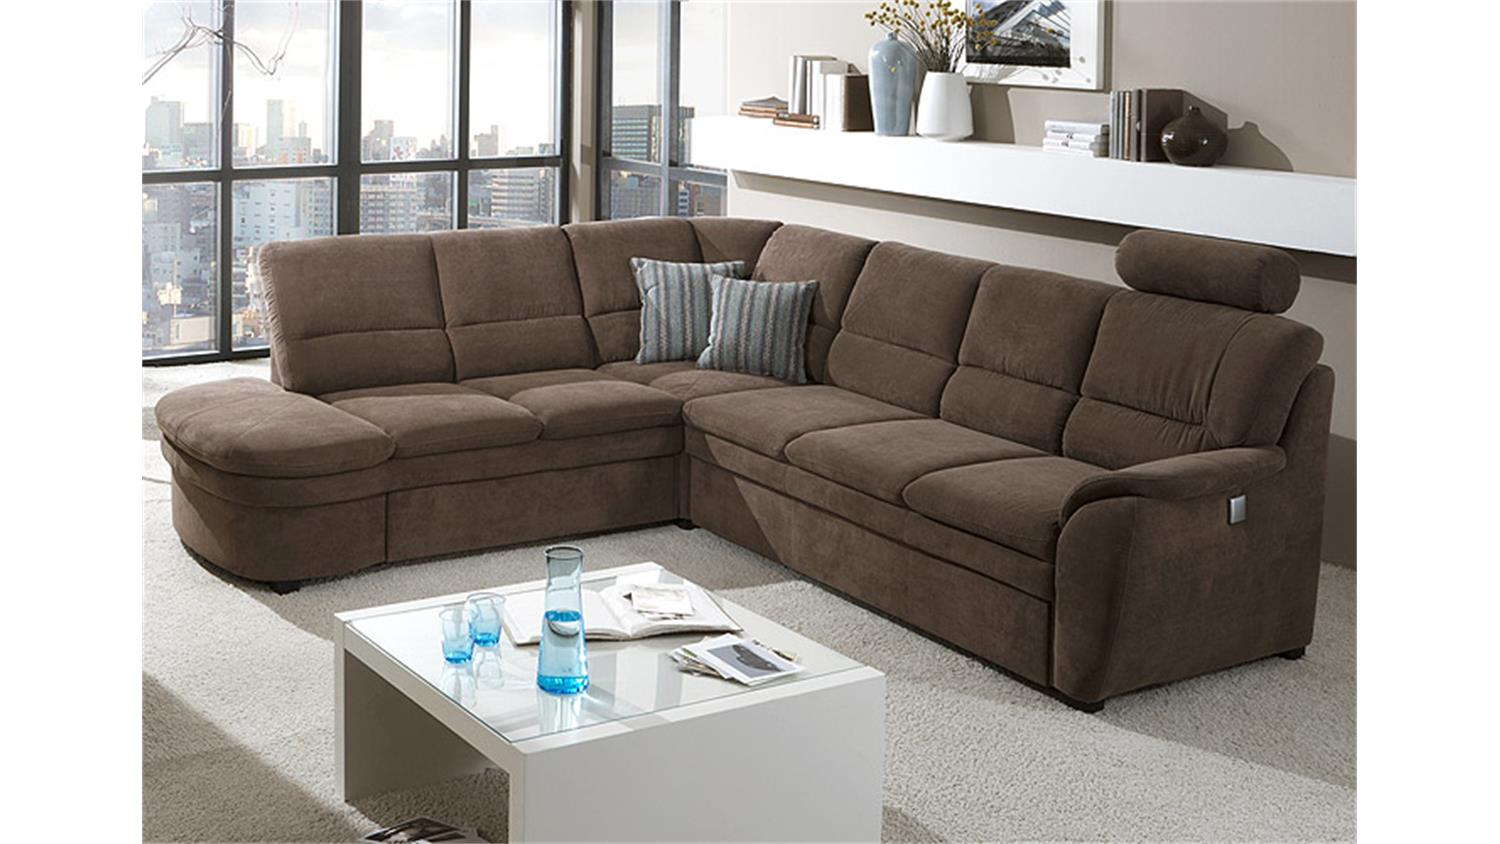 Ecksofa braun  links GINGER Sofa in braun mit Bettfunktion